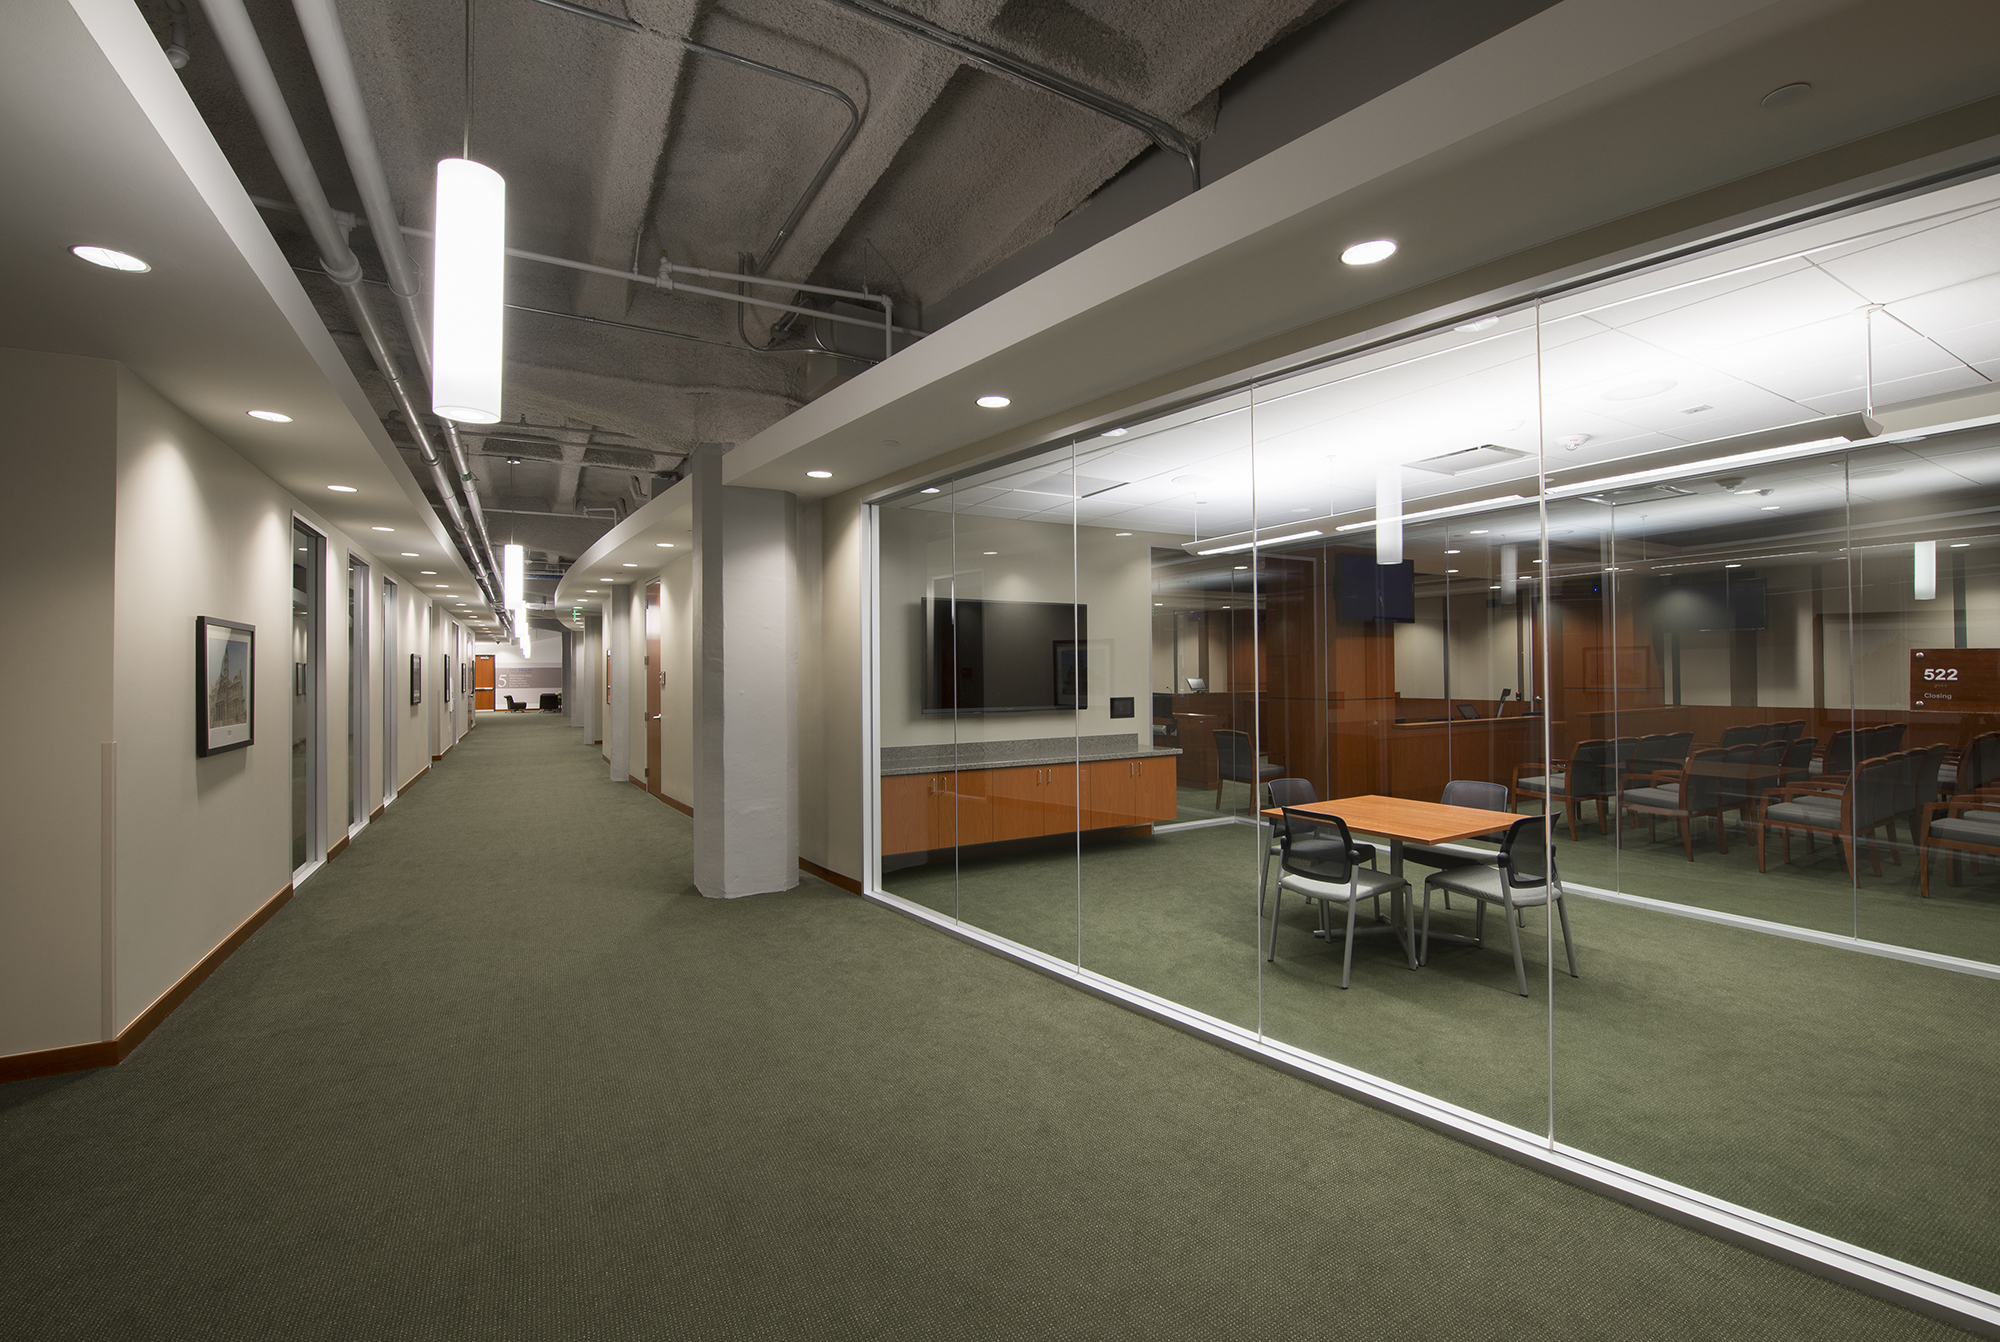 University Of North Texas Dallas College Law Renovation